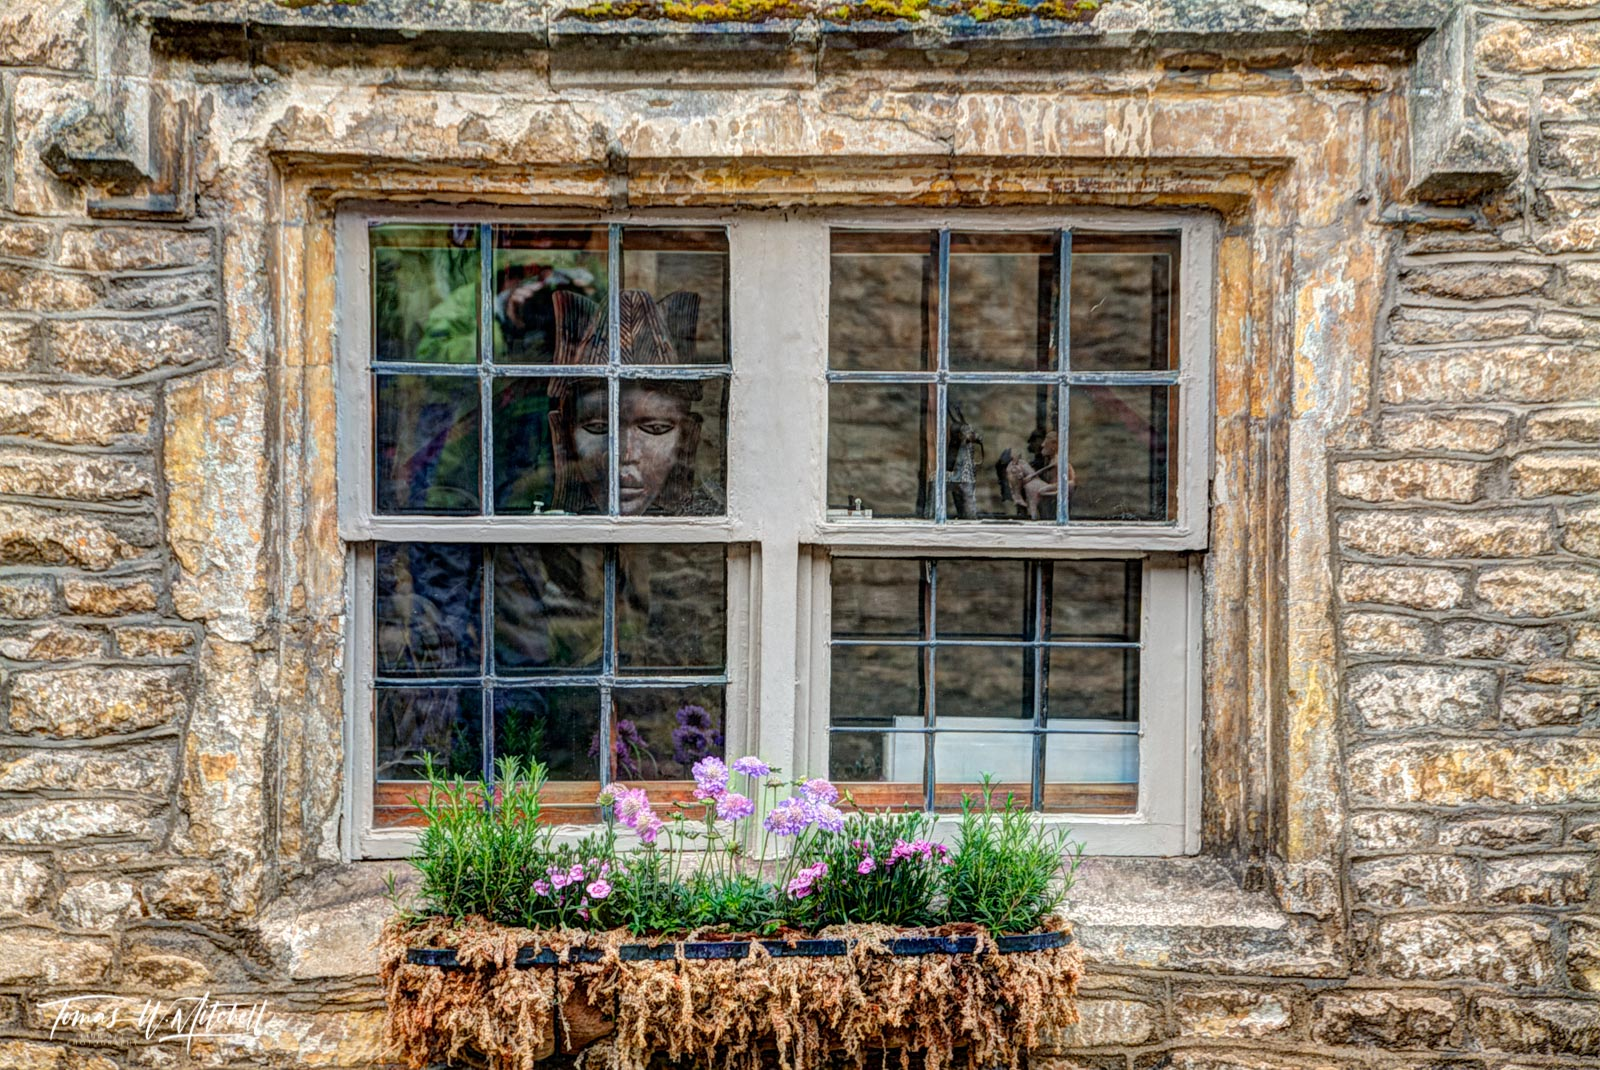 Fine Art, Museum Grade, prints, England, Castlecombe, Cotswolds, mask, window, photograph, photo